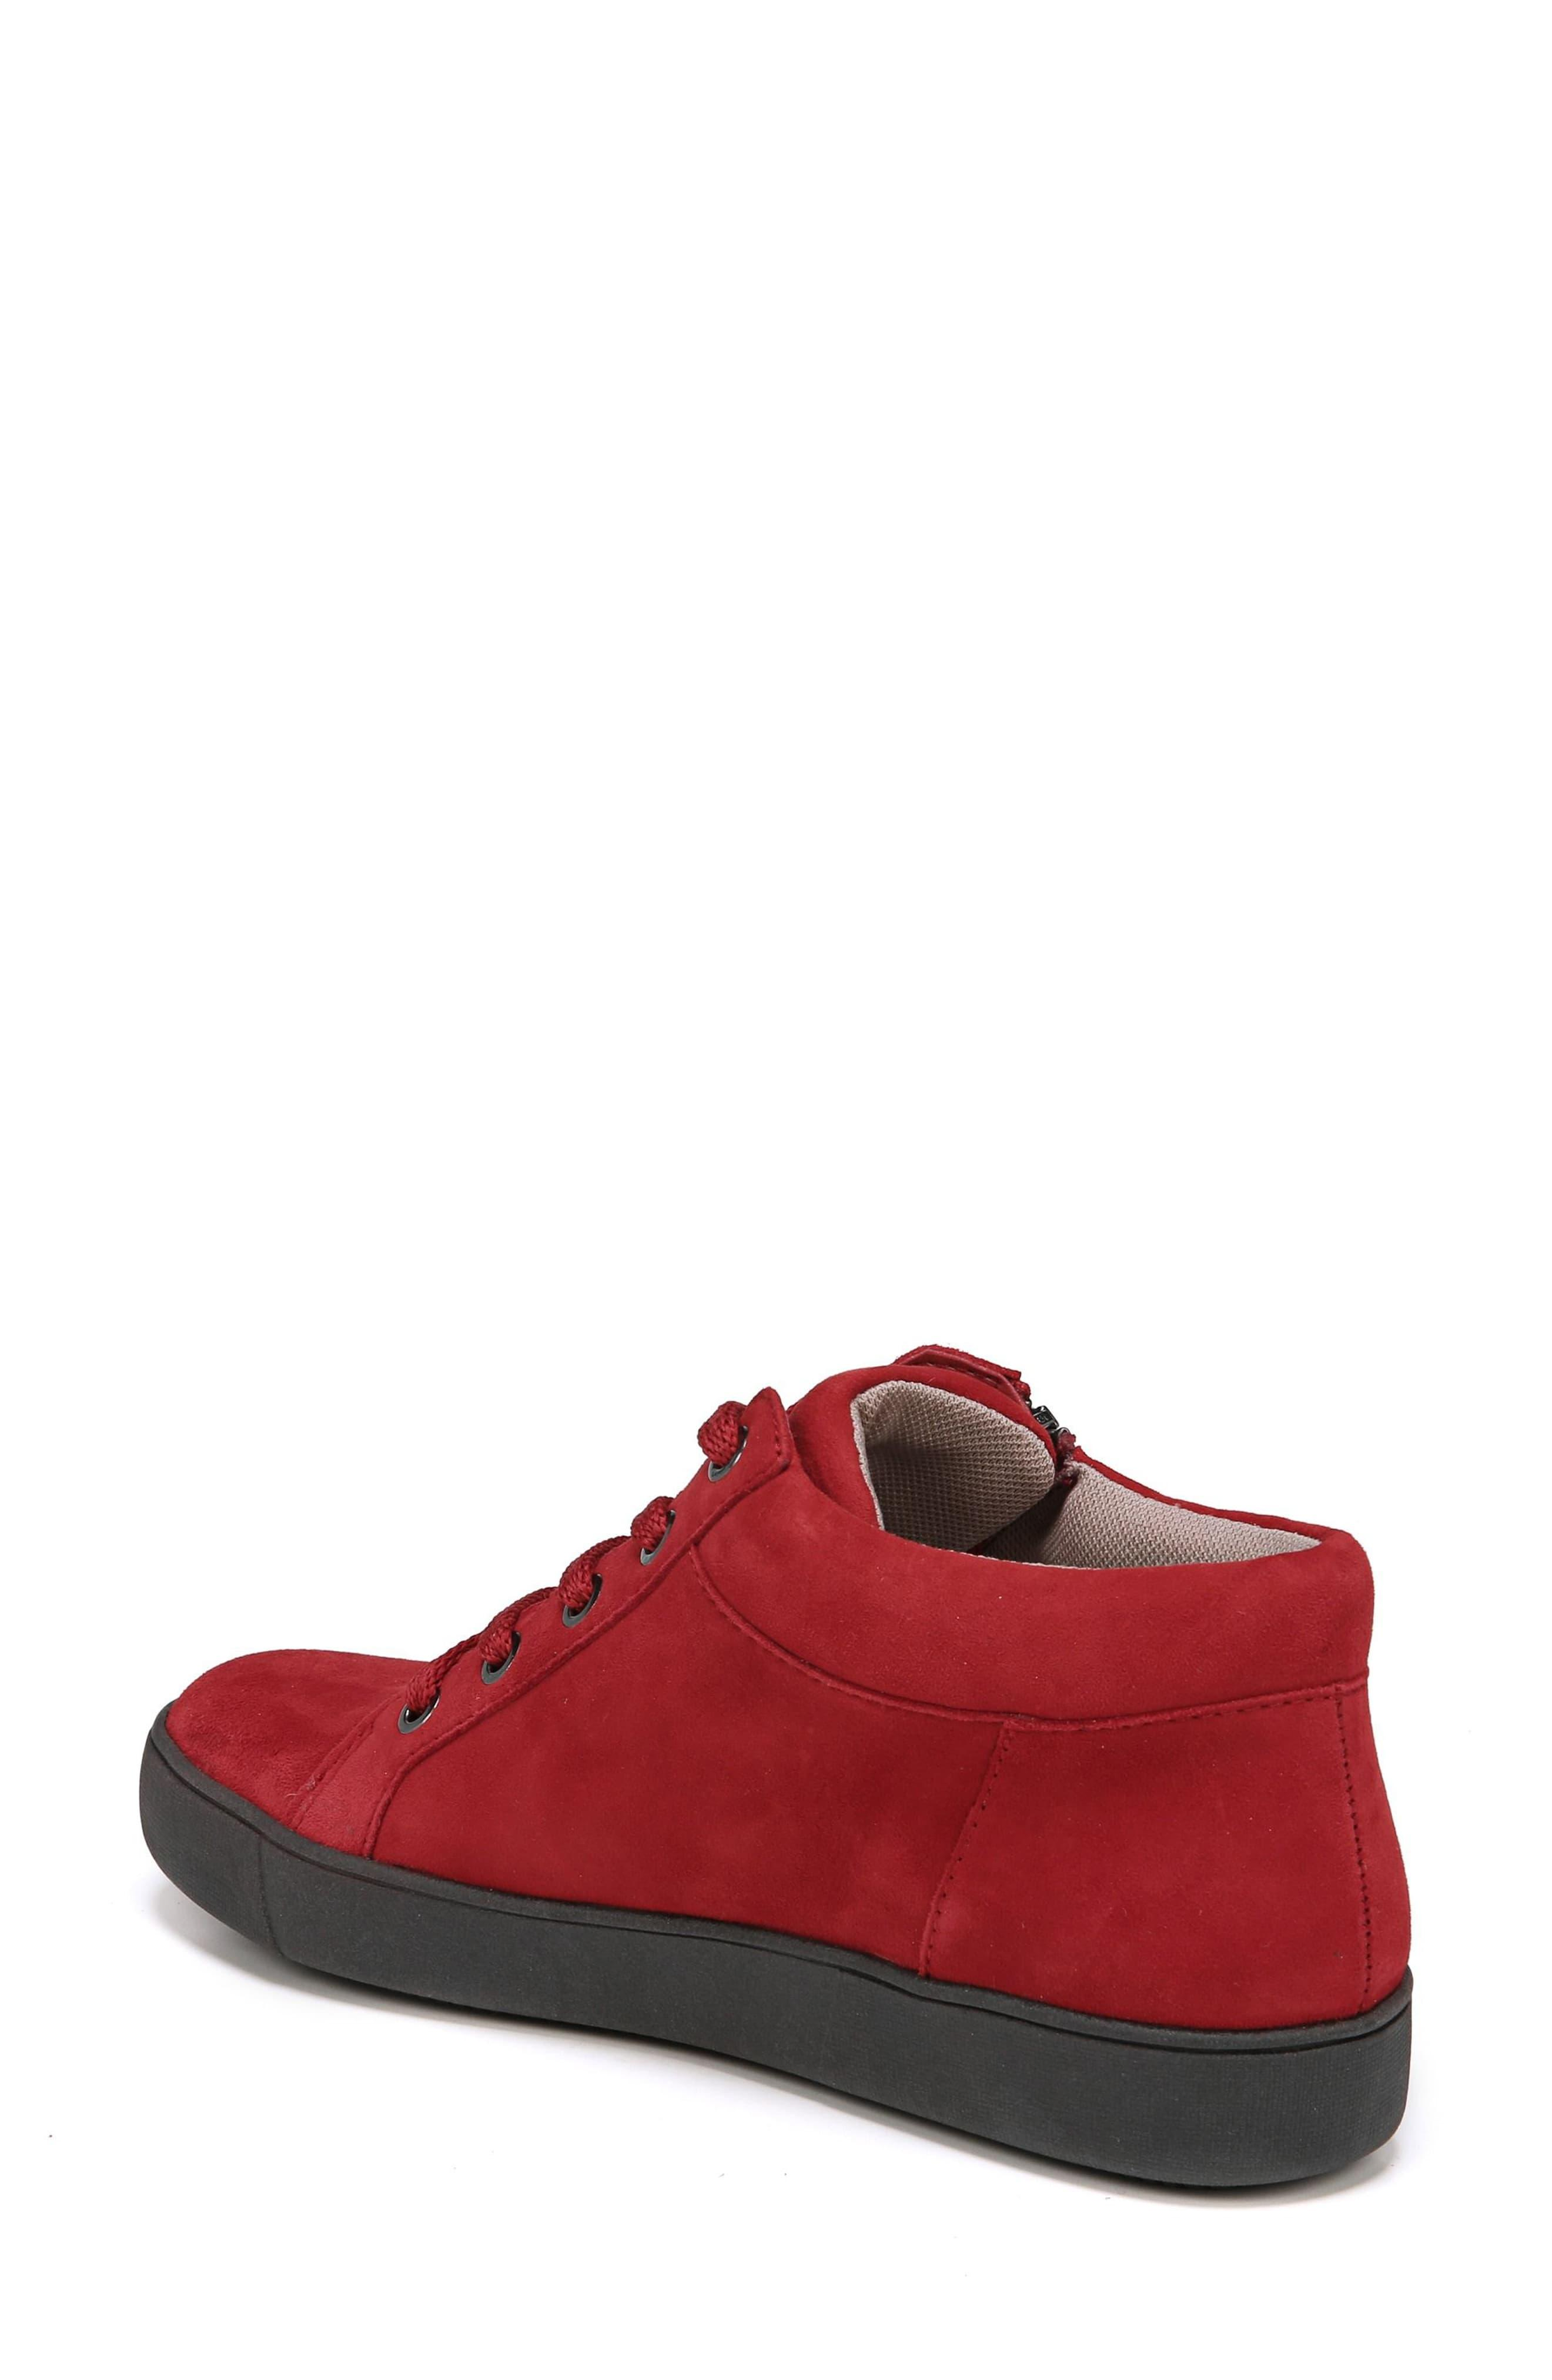 Naturalizer Motley in Red - Lyst